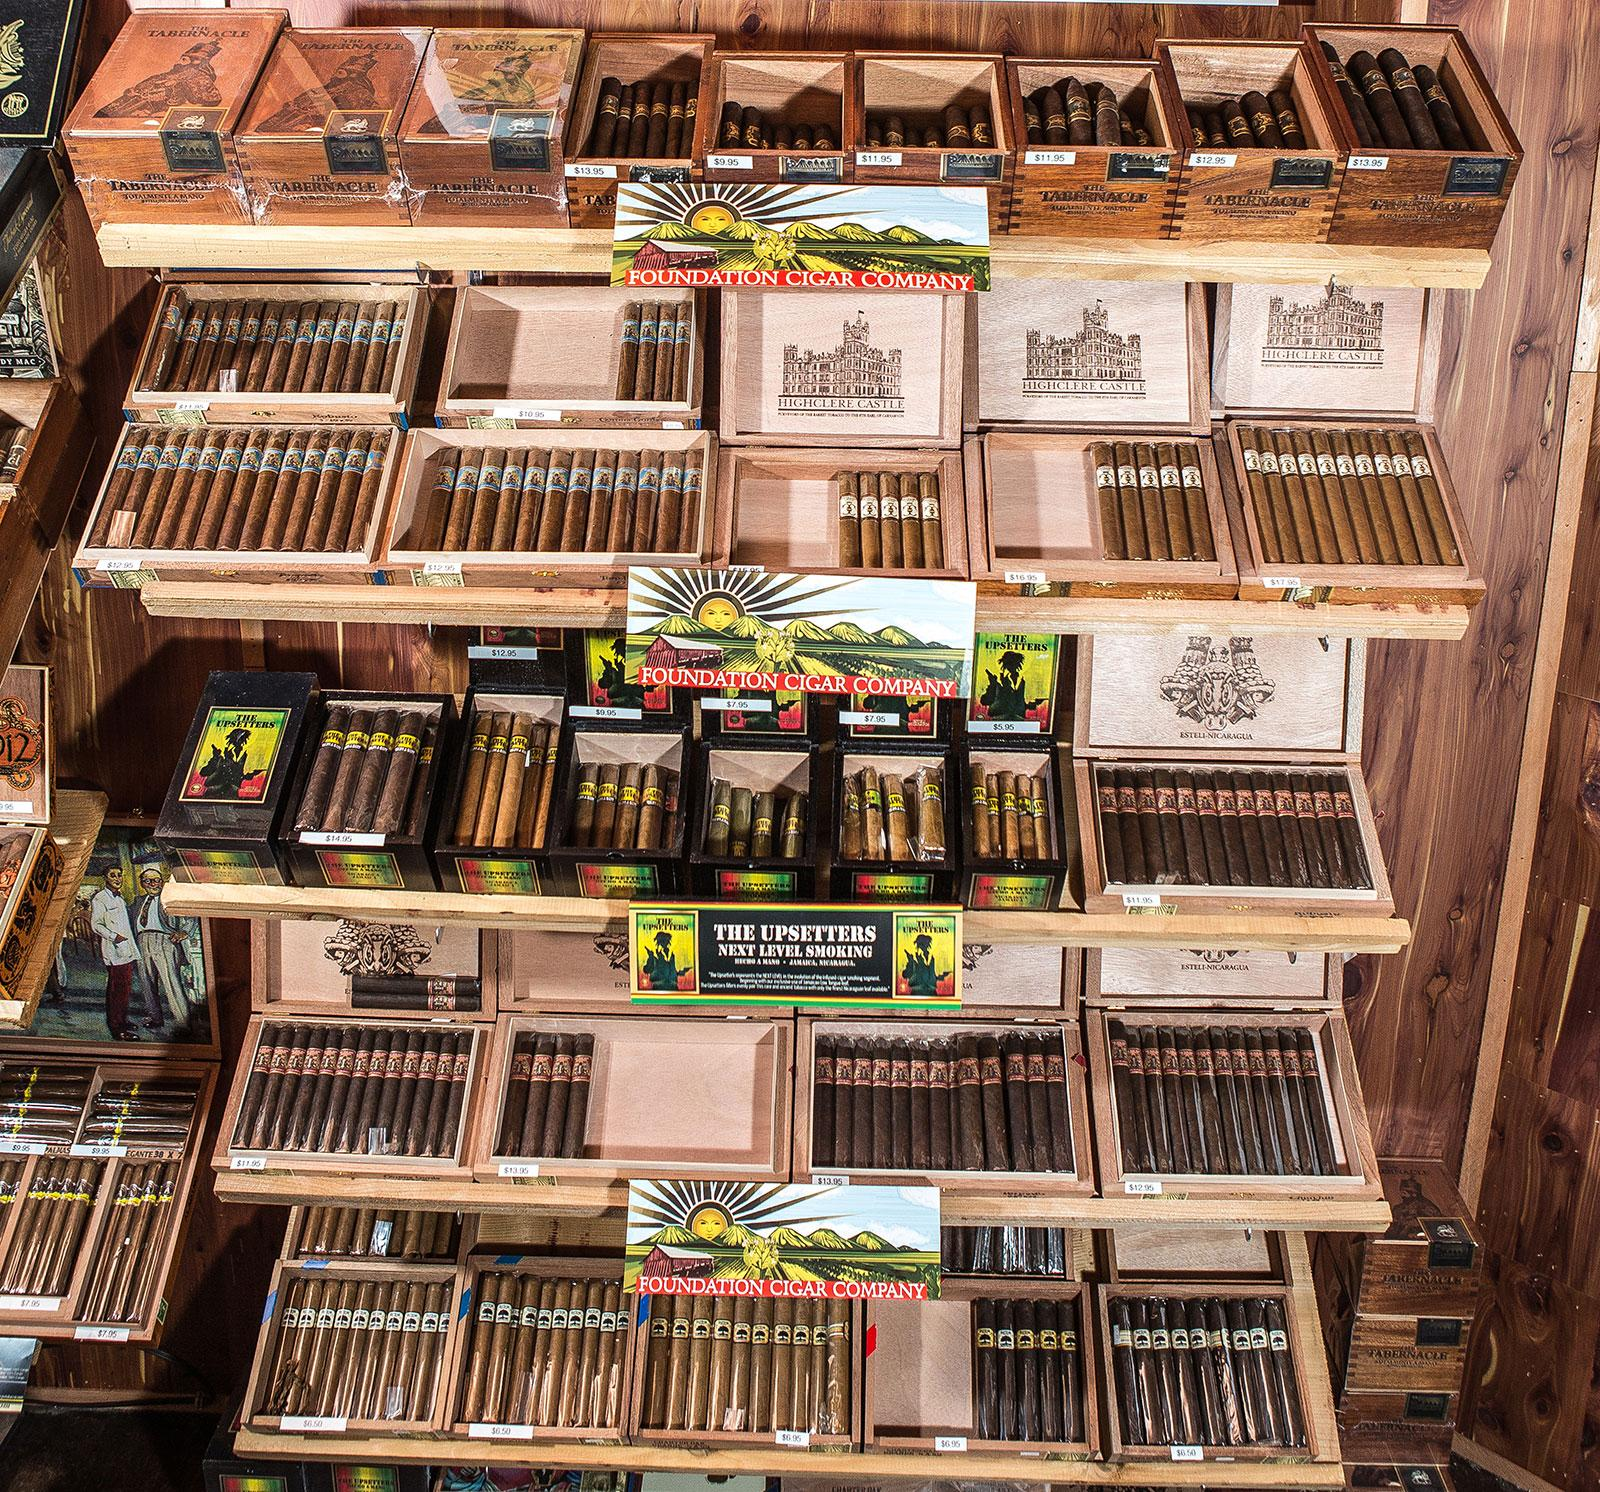 Ligero Tobacco House carries the entire portfolio of Foundation cigars.